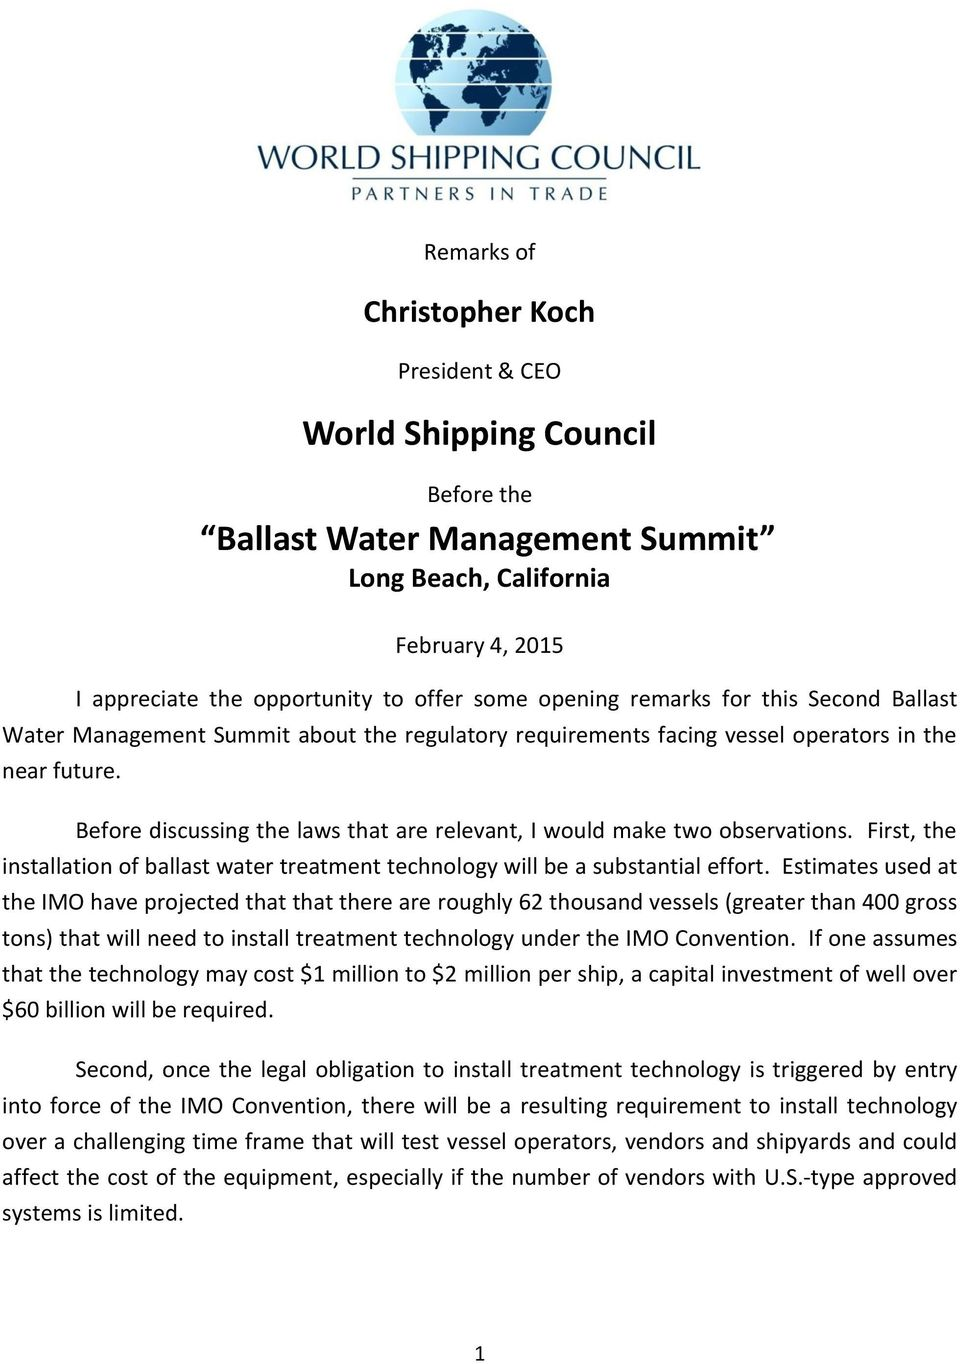 Before discussing the laws that are relevant, I would make two observations. First, the installation of ballast water treatment technology will be a substantial effort.